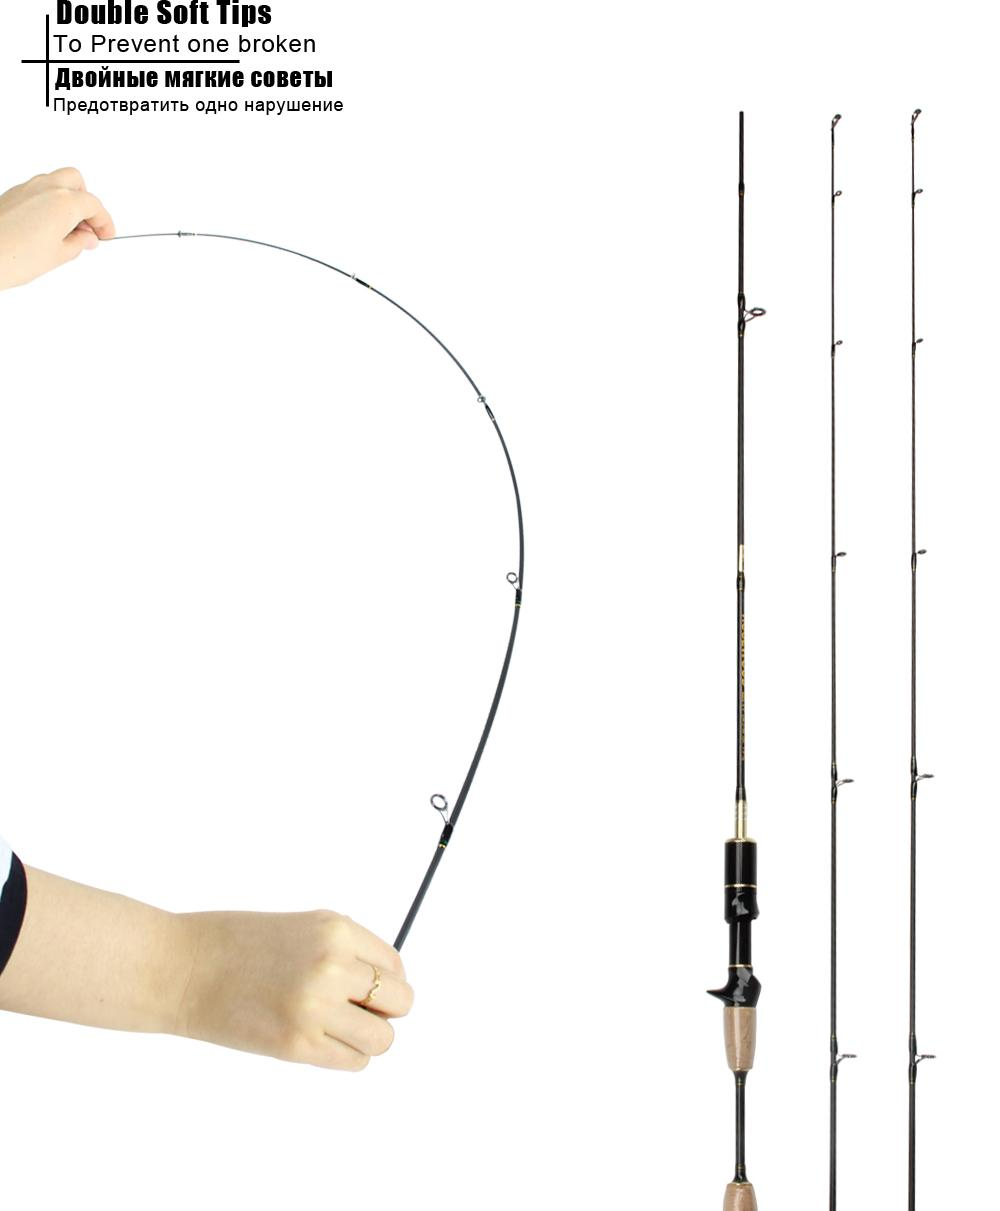 hight resolution of rosewood 1 8m double tip ul fishing rod 6 3 1 ultralight baitcasting reel set and casting rod fishing combo add pole bag